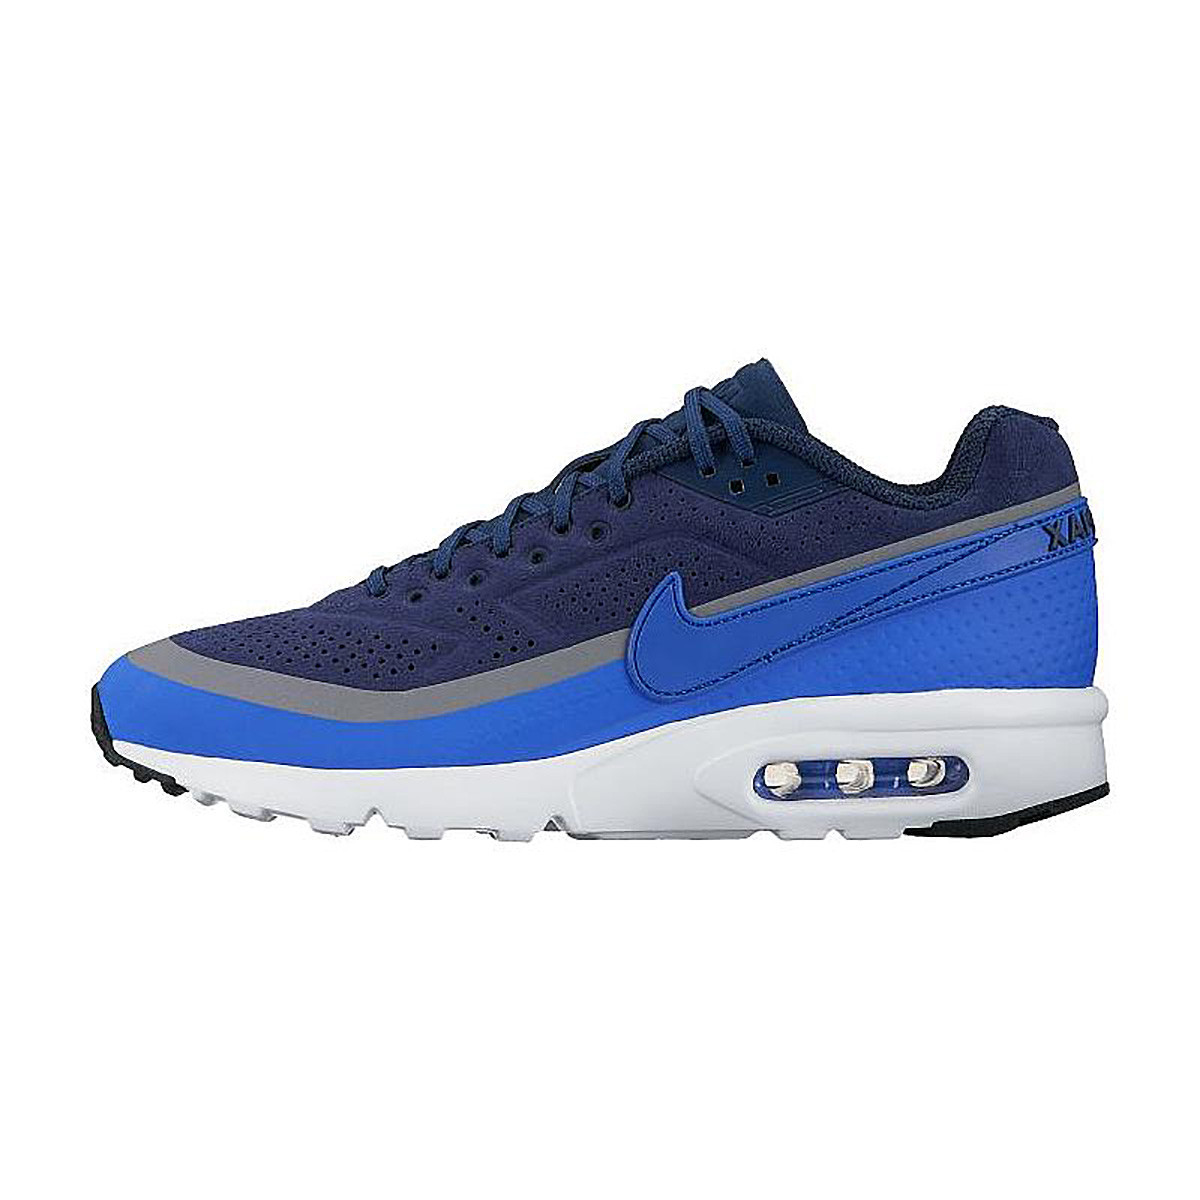 Basket Nike Air Max BW Ultra Moire Ref. 918205 001 DownTownStock.Com